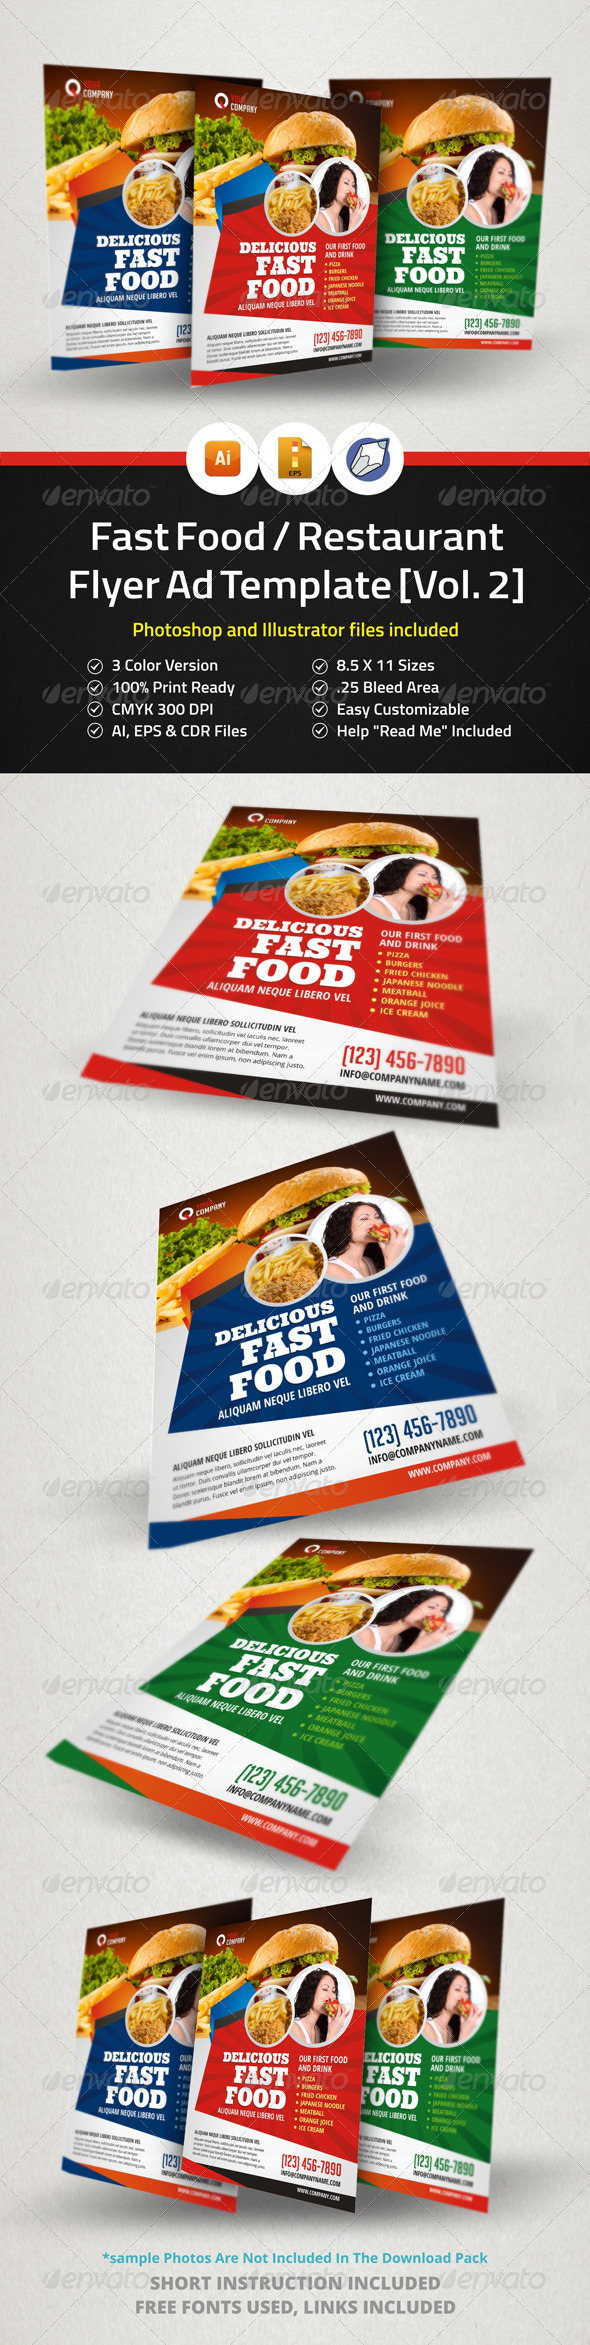 fast food restaurant flyer ad template vol 2 by jbn comilla graphicriver. Black Bedroom Furniture Sets. Home Design Ideas